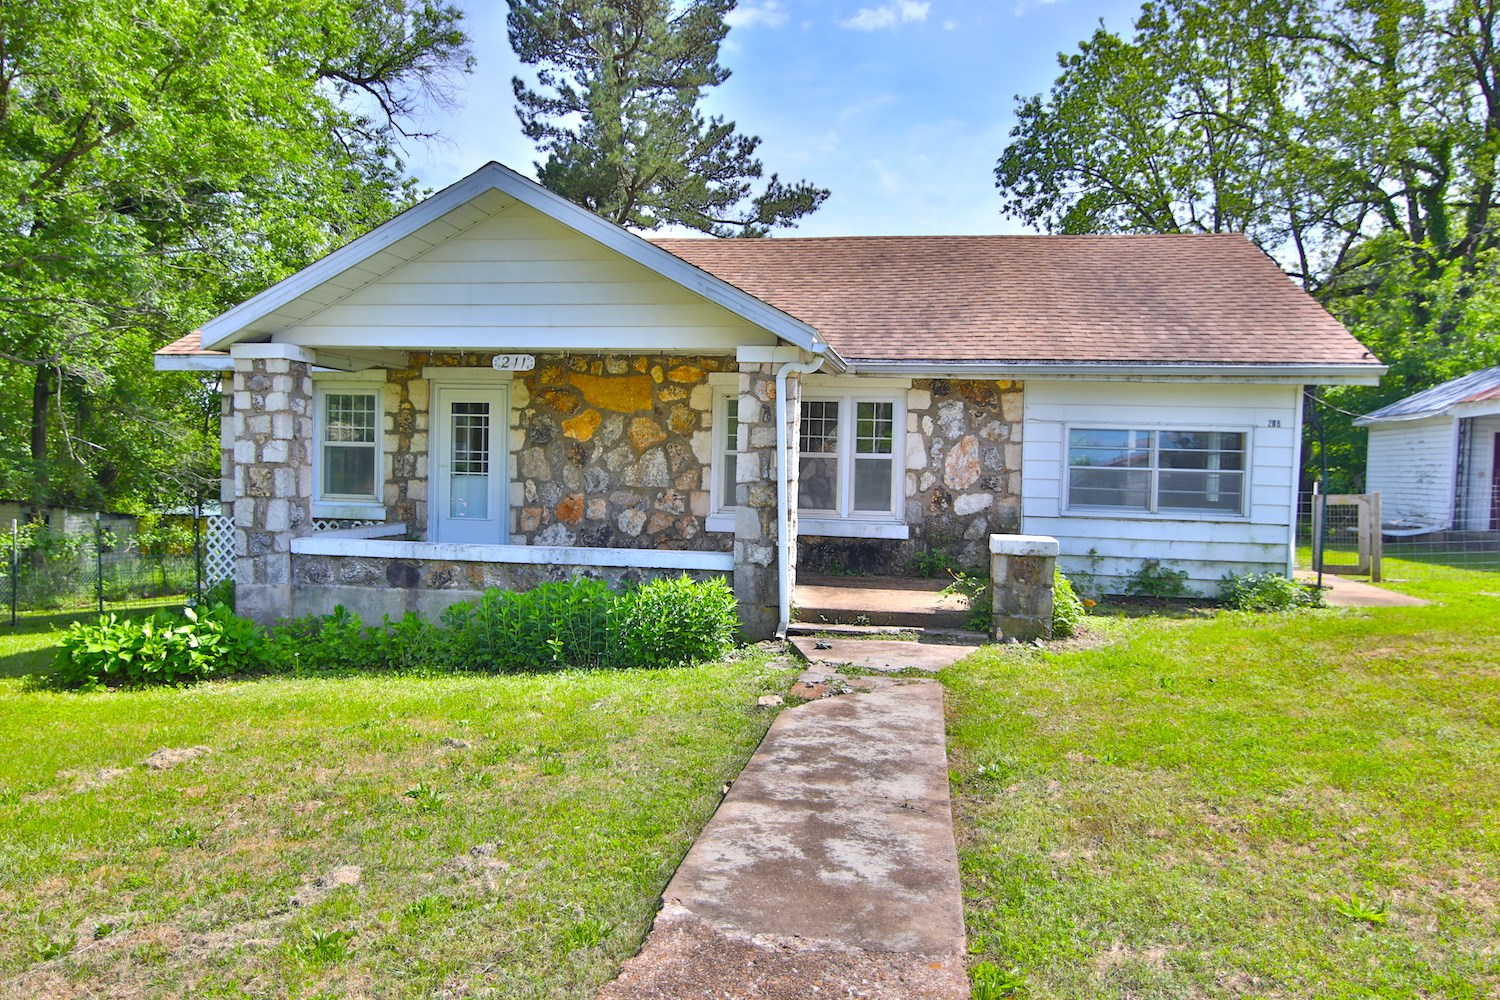 Native Stone House for Sale in Thayer Mo